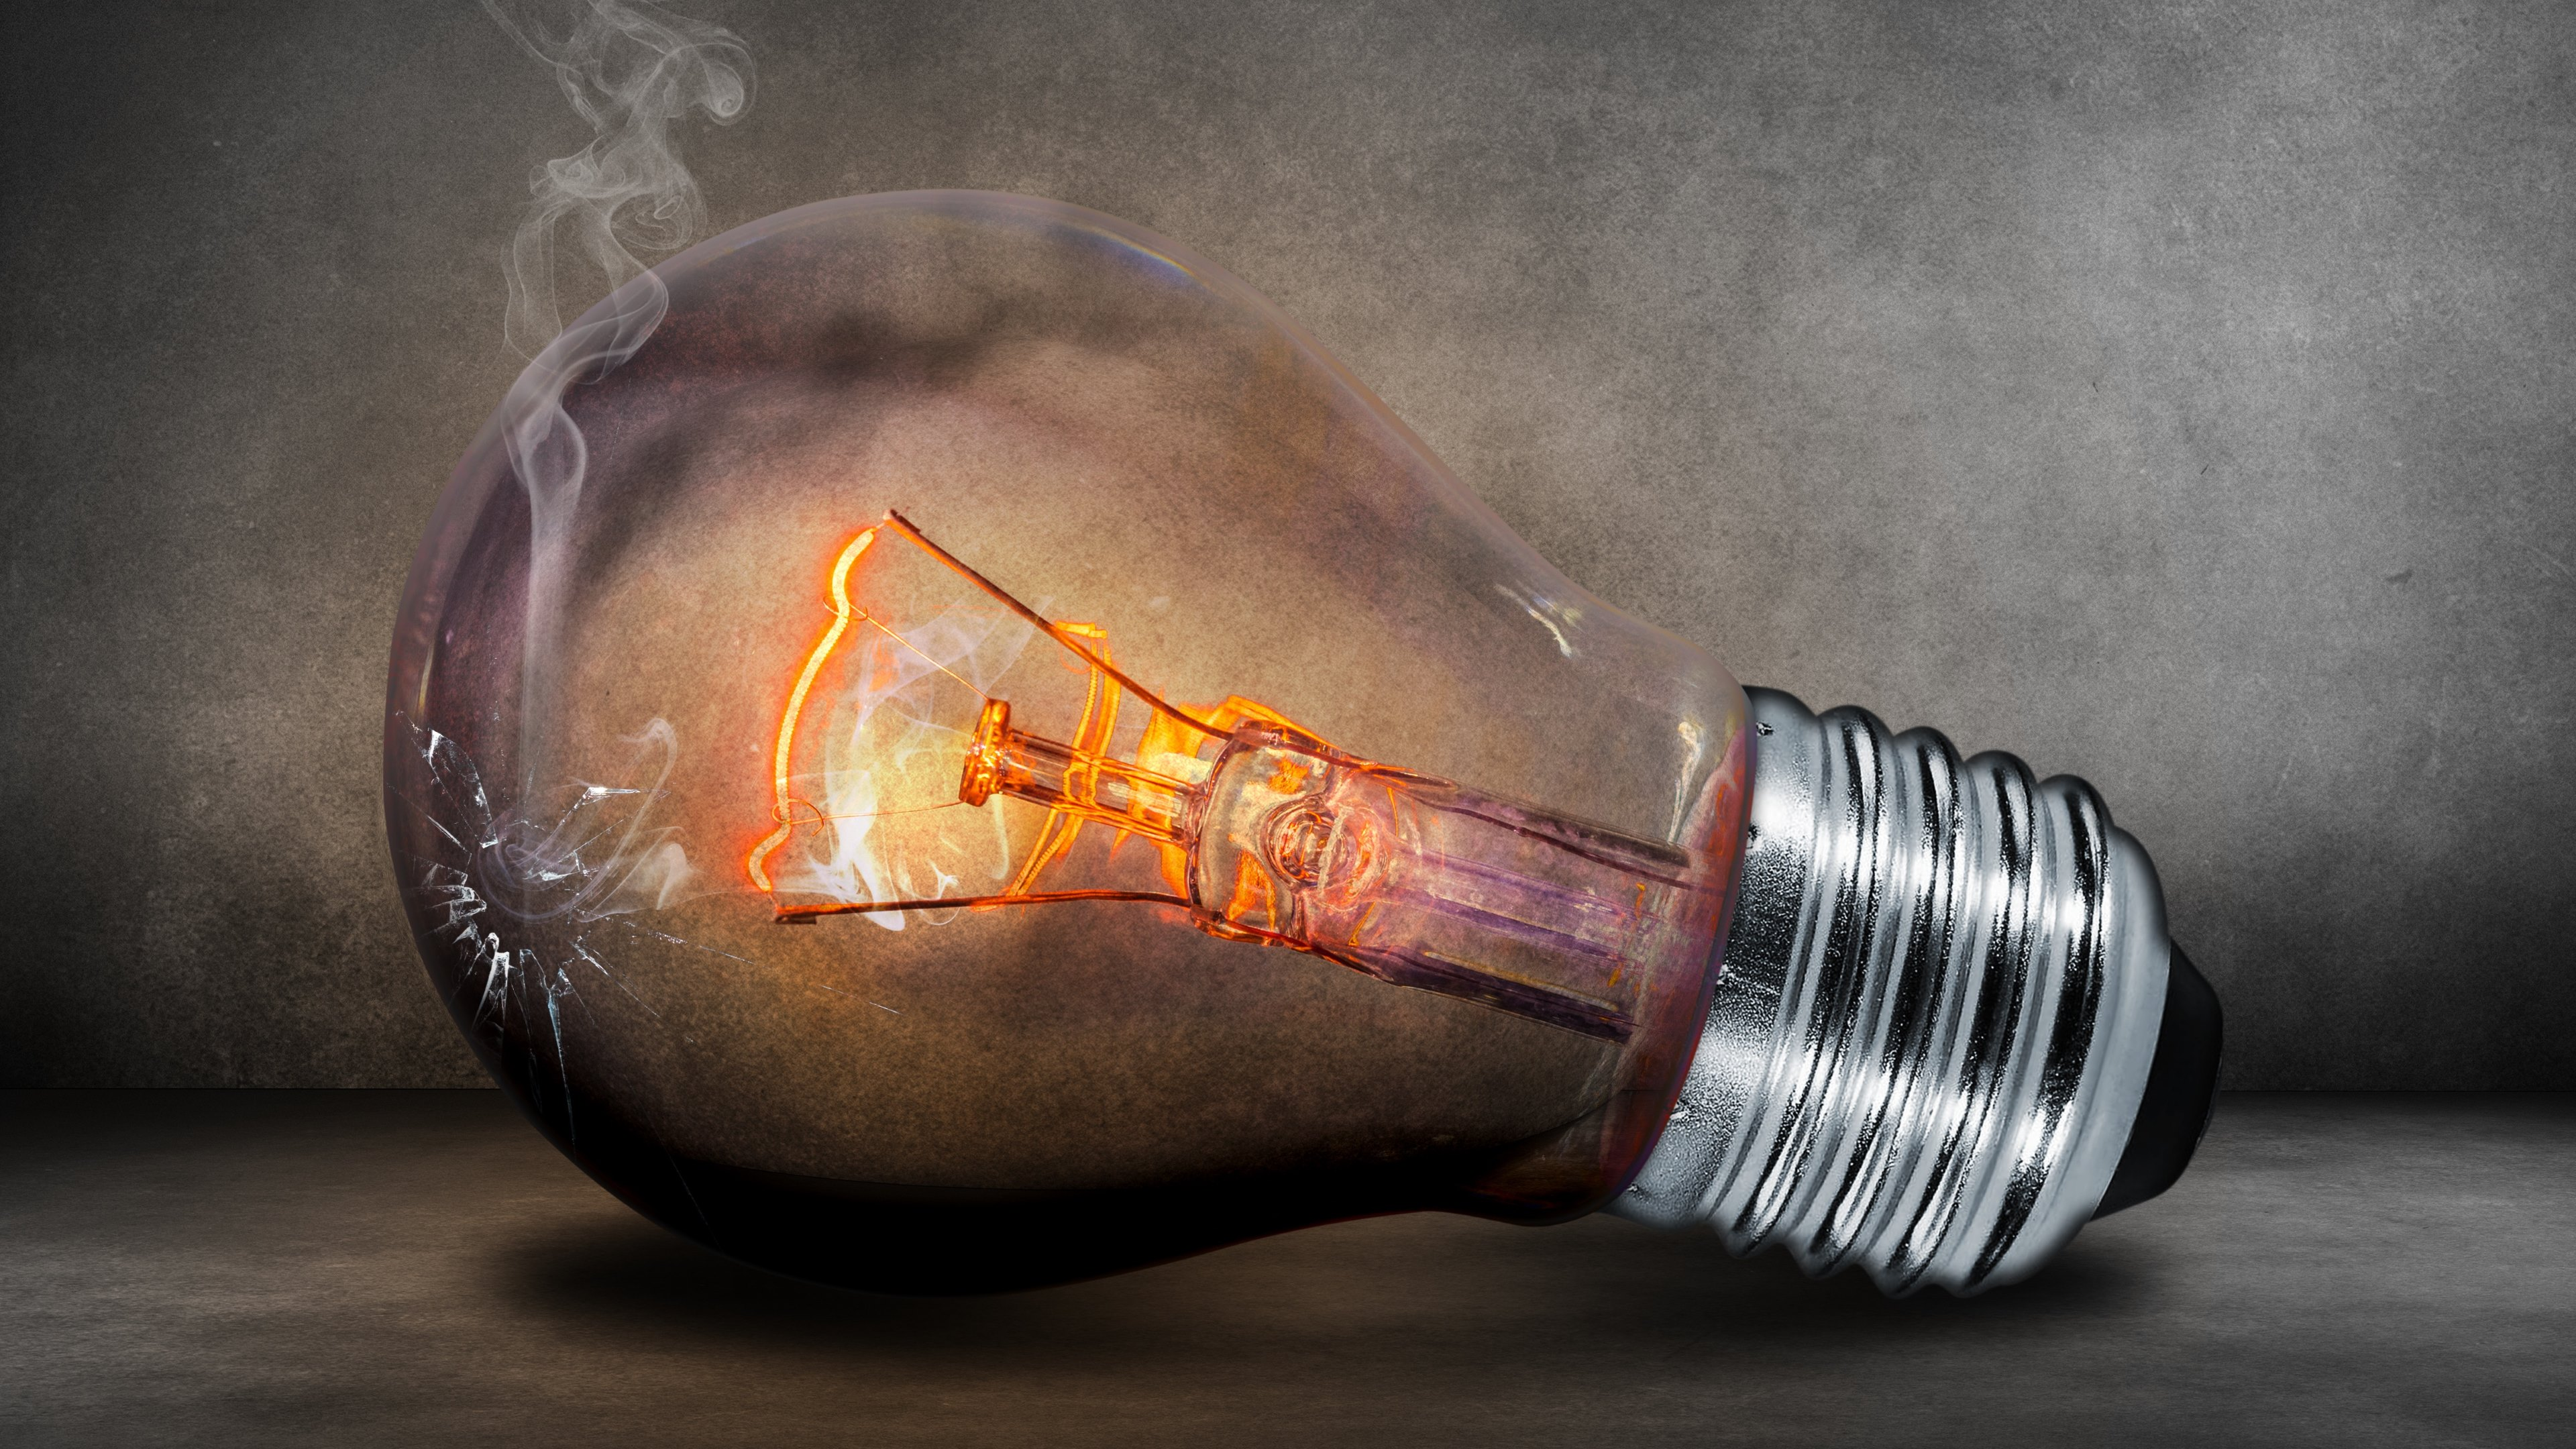 Light Bulb Glow Creative Photoshop Wallpapers HD Wallpapers 3840x2160